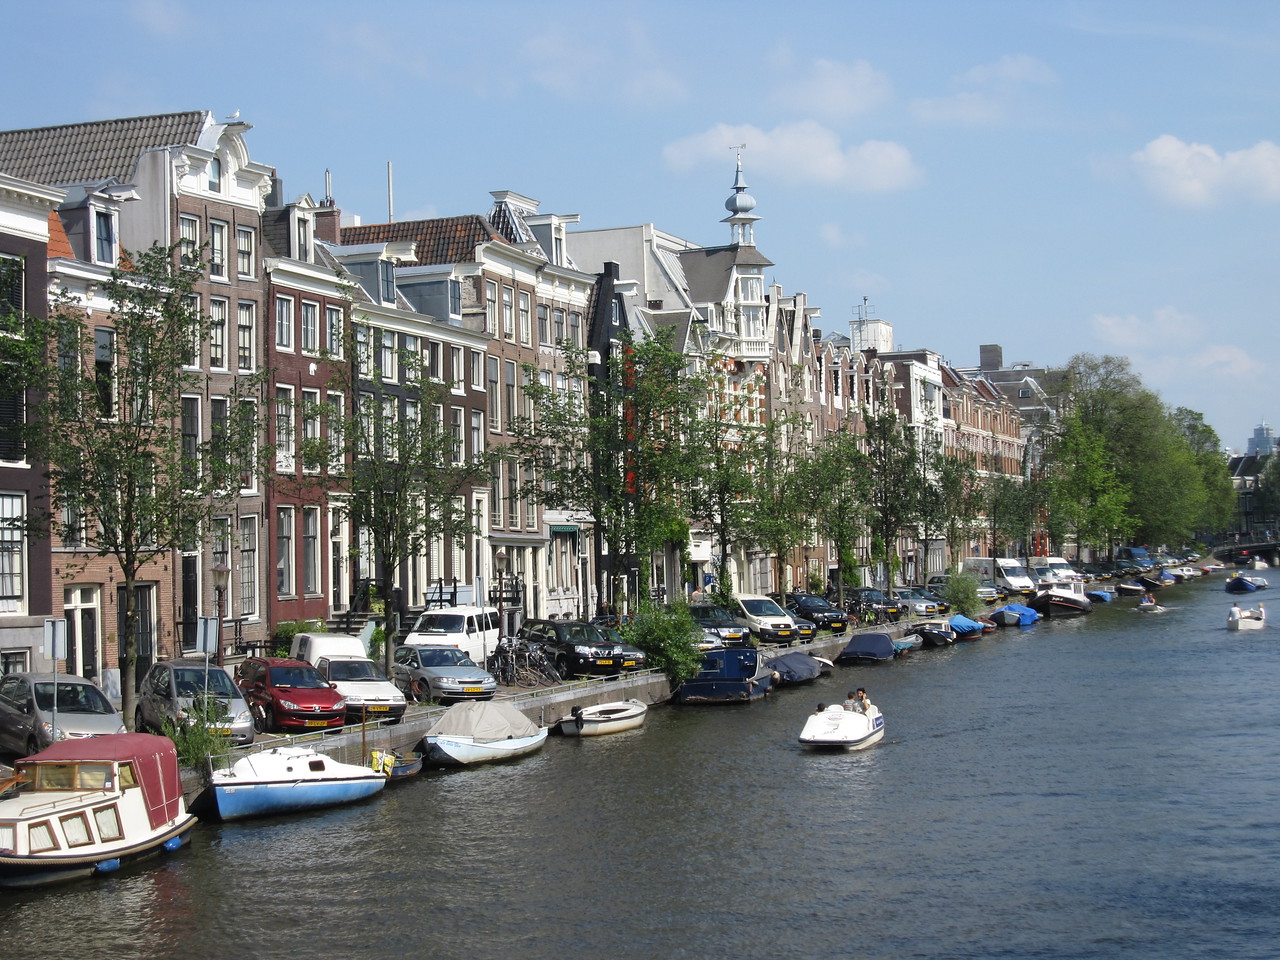 Seventeenth-century canal ring area of Amsterdam inside the Singelgracht